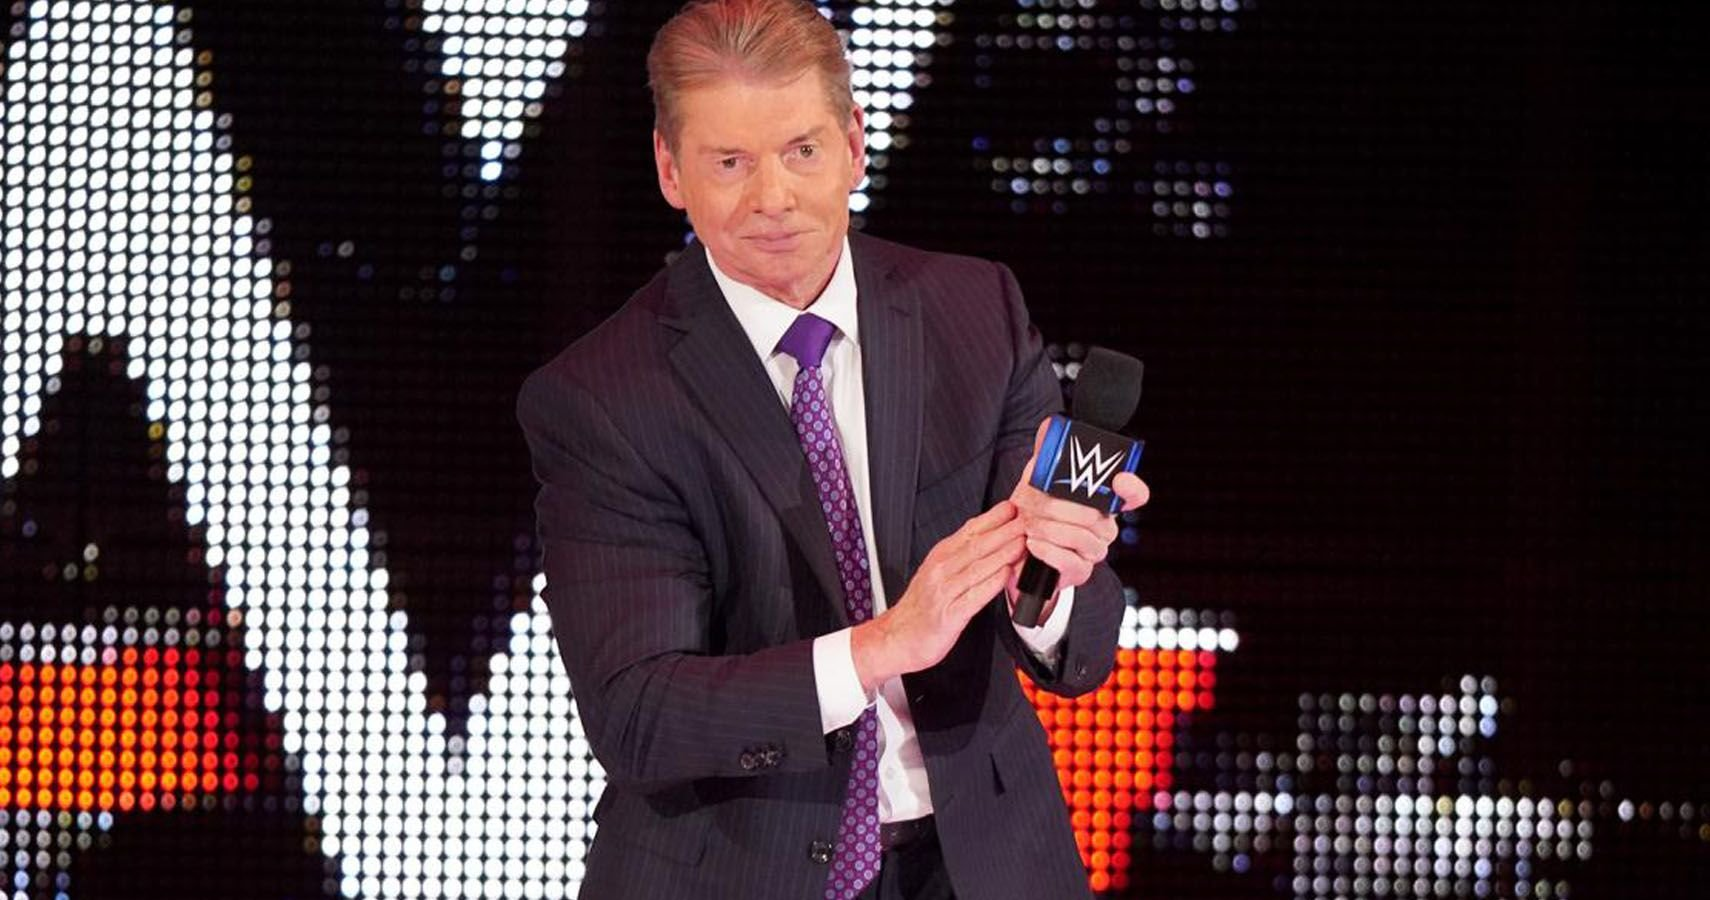 Vince McMahon Reportedly Tells WWE Creative, 'No More Cold Matches' - cover